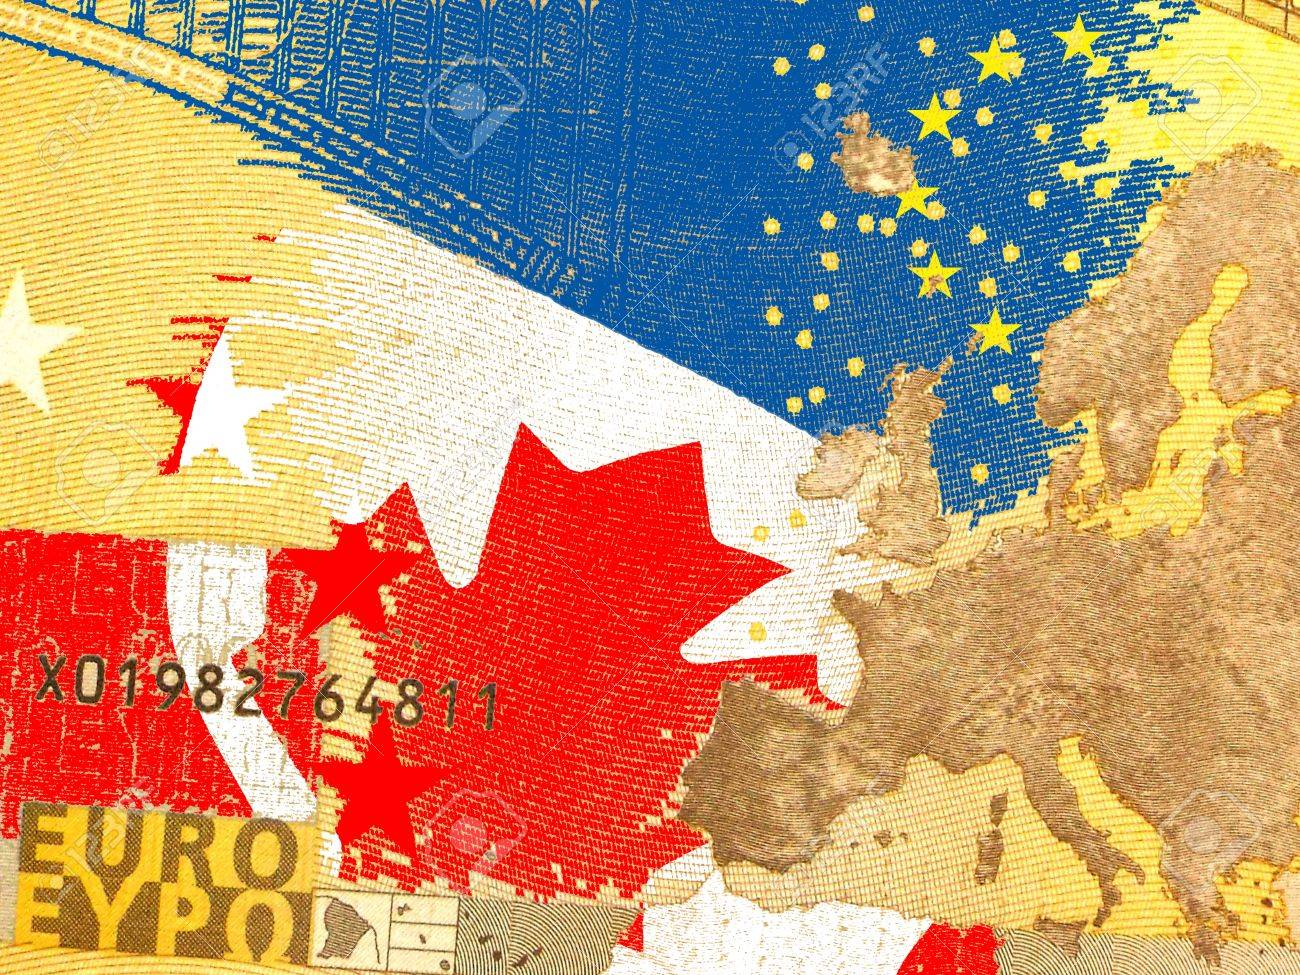 CETA - the Comprehensive Economic and Trade Agreement - Canadian flag behind a translucent Euro banknote - 42642856